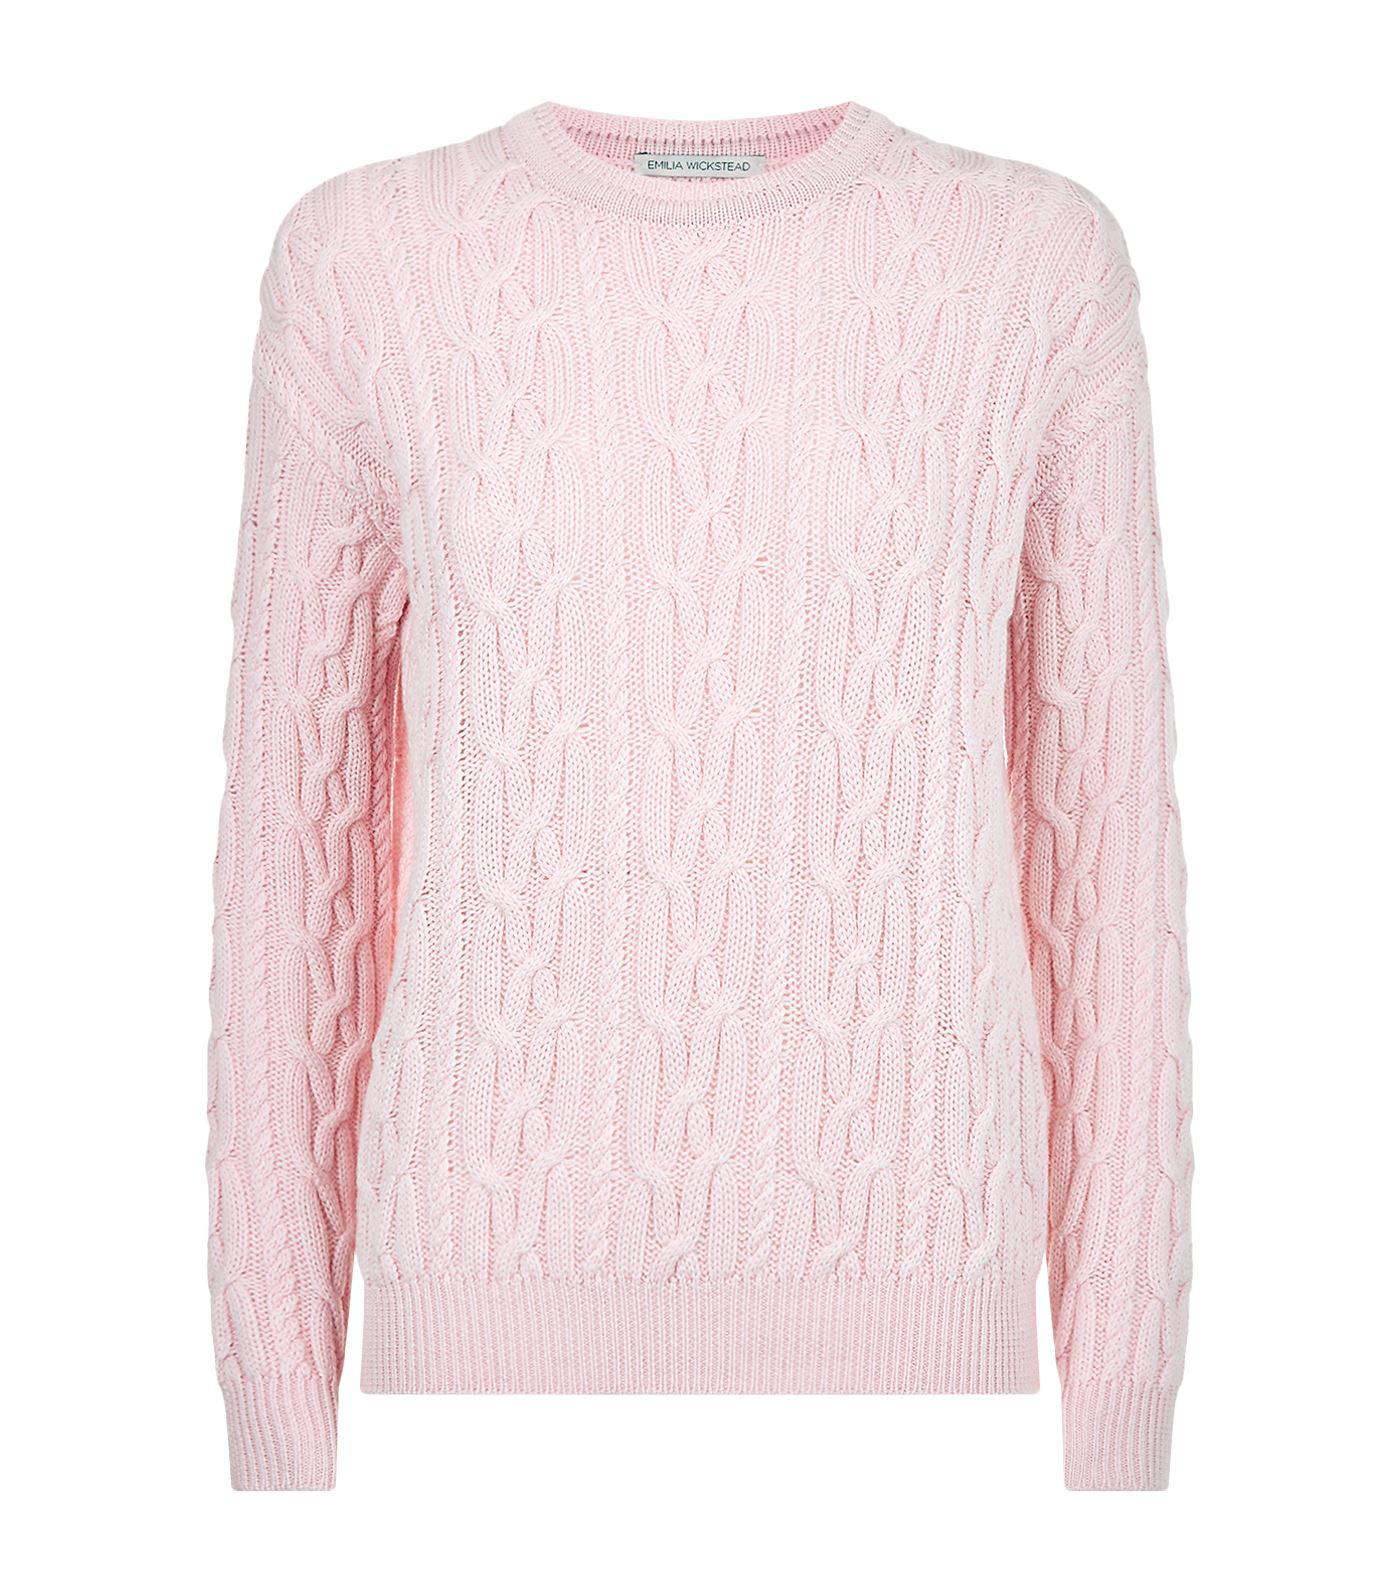 Emilia wickstead Olive Cable Knit Sweater in Pink | Lyst